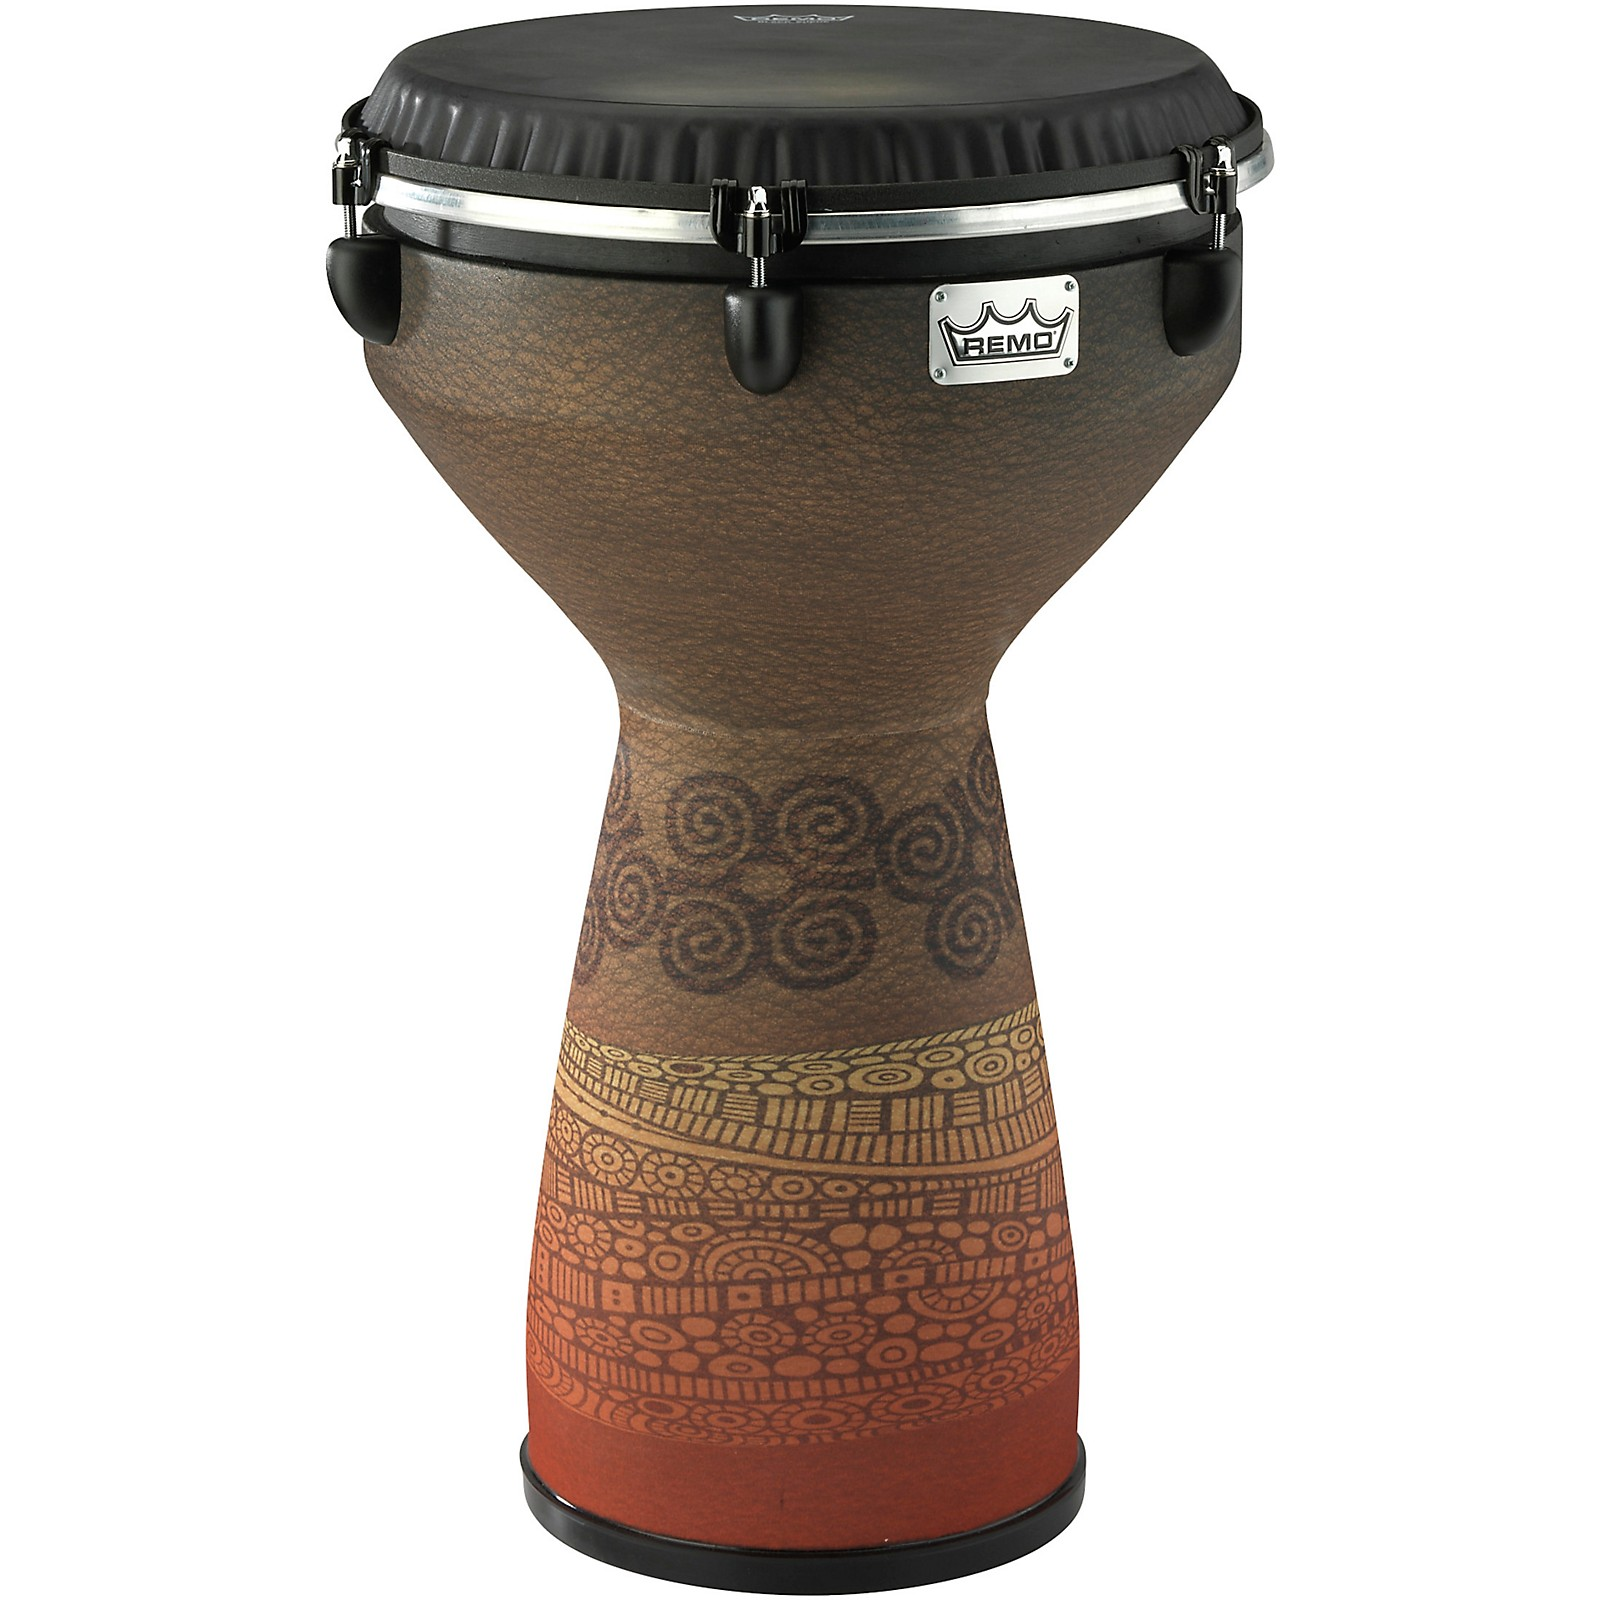 Remo Flareout Djembe Drum - Desert Brown, 13in